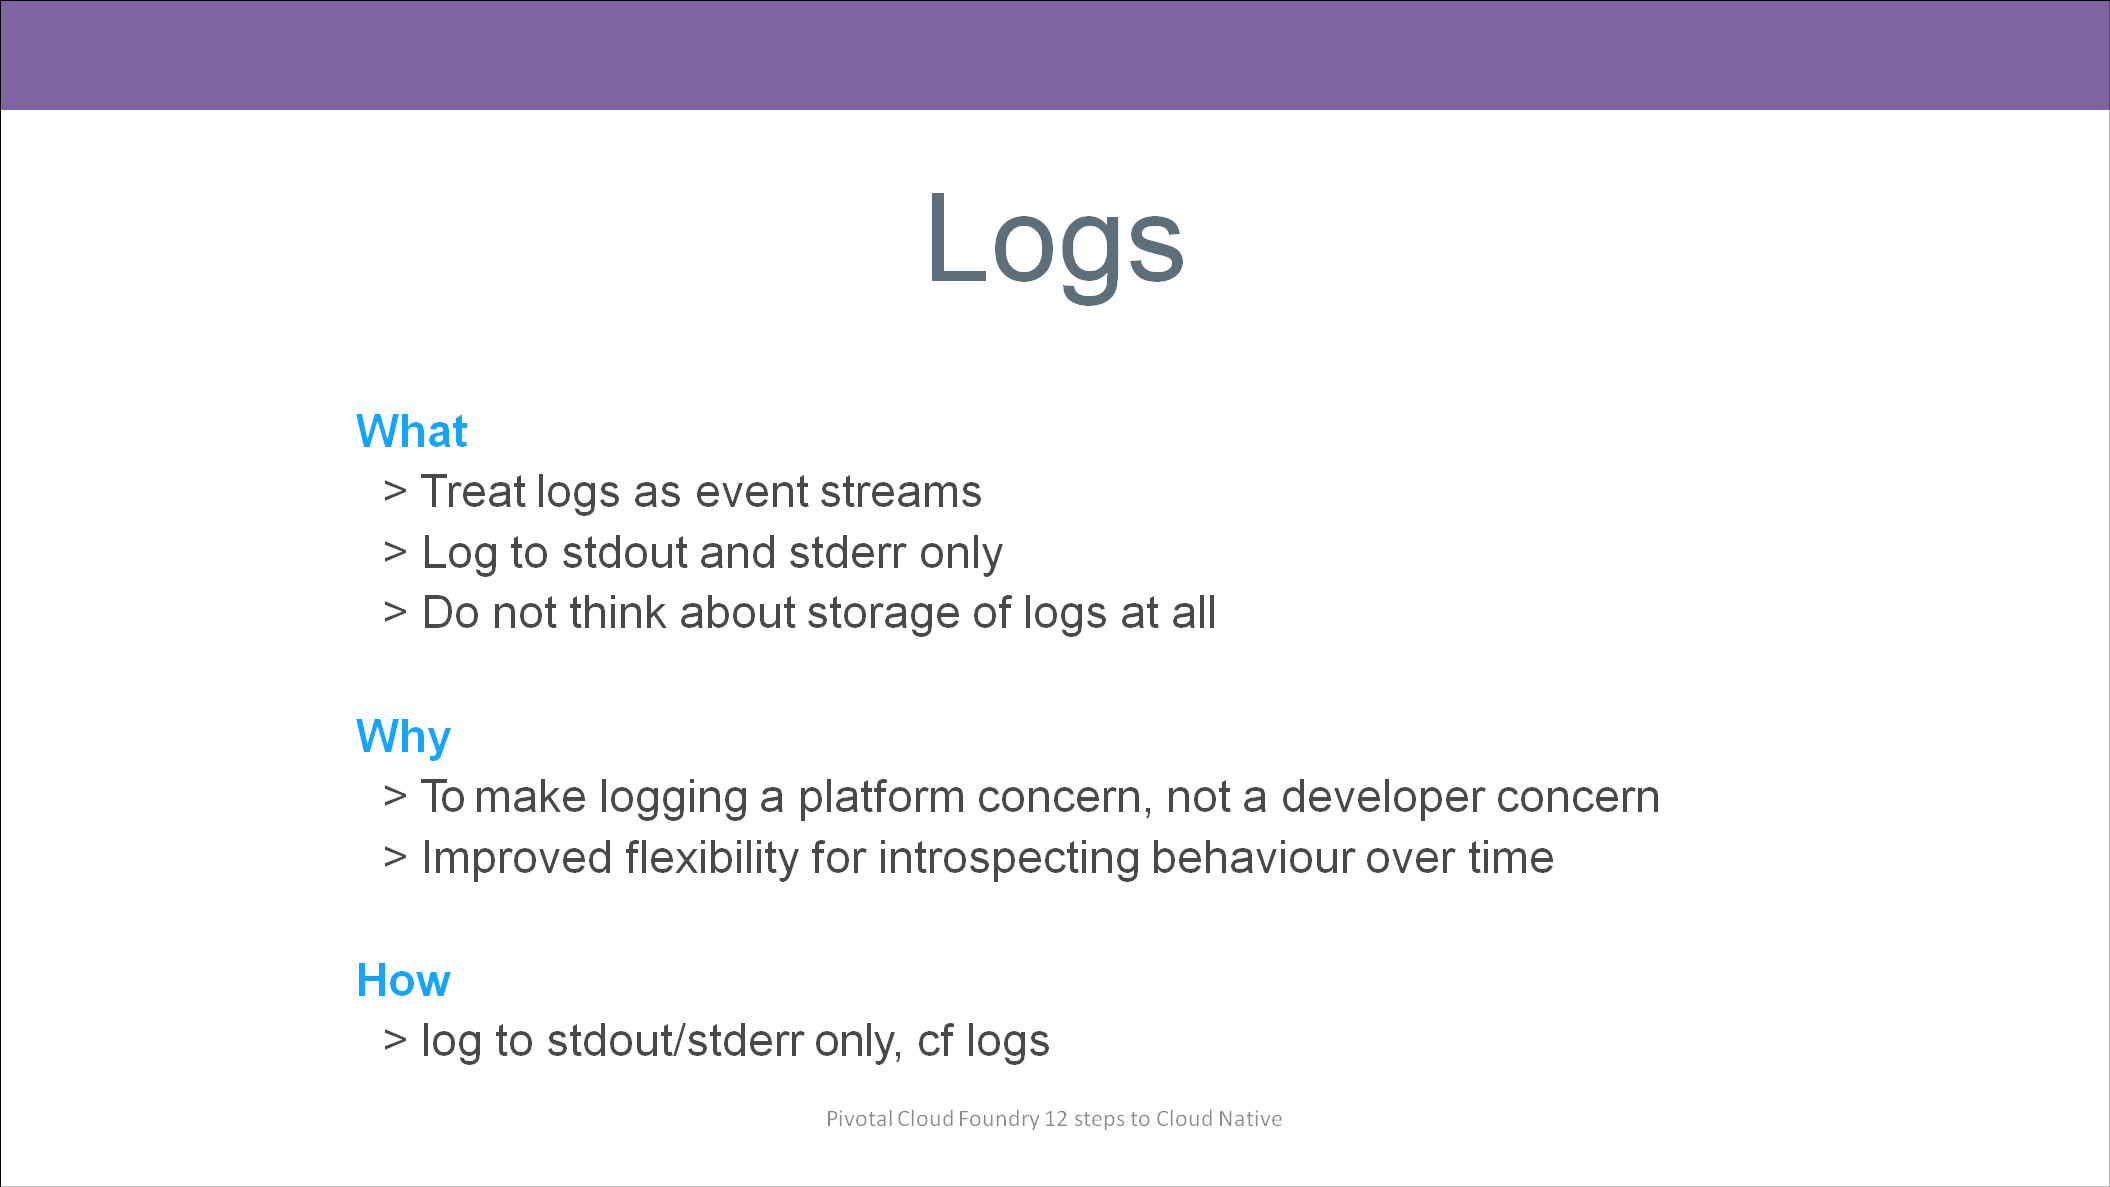 12 Factors to build Cloud Native Applications - Logs